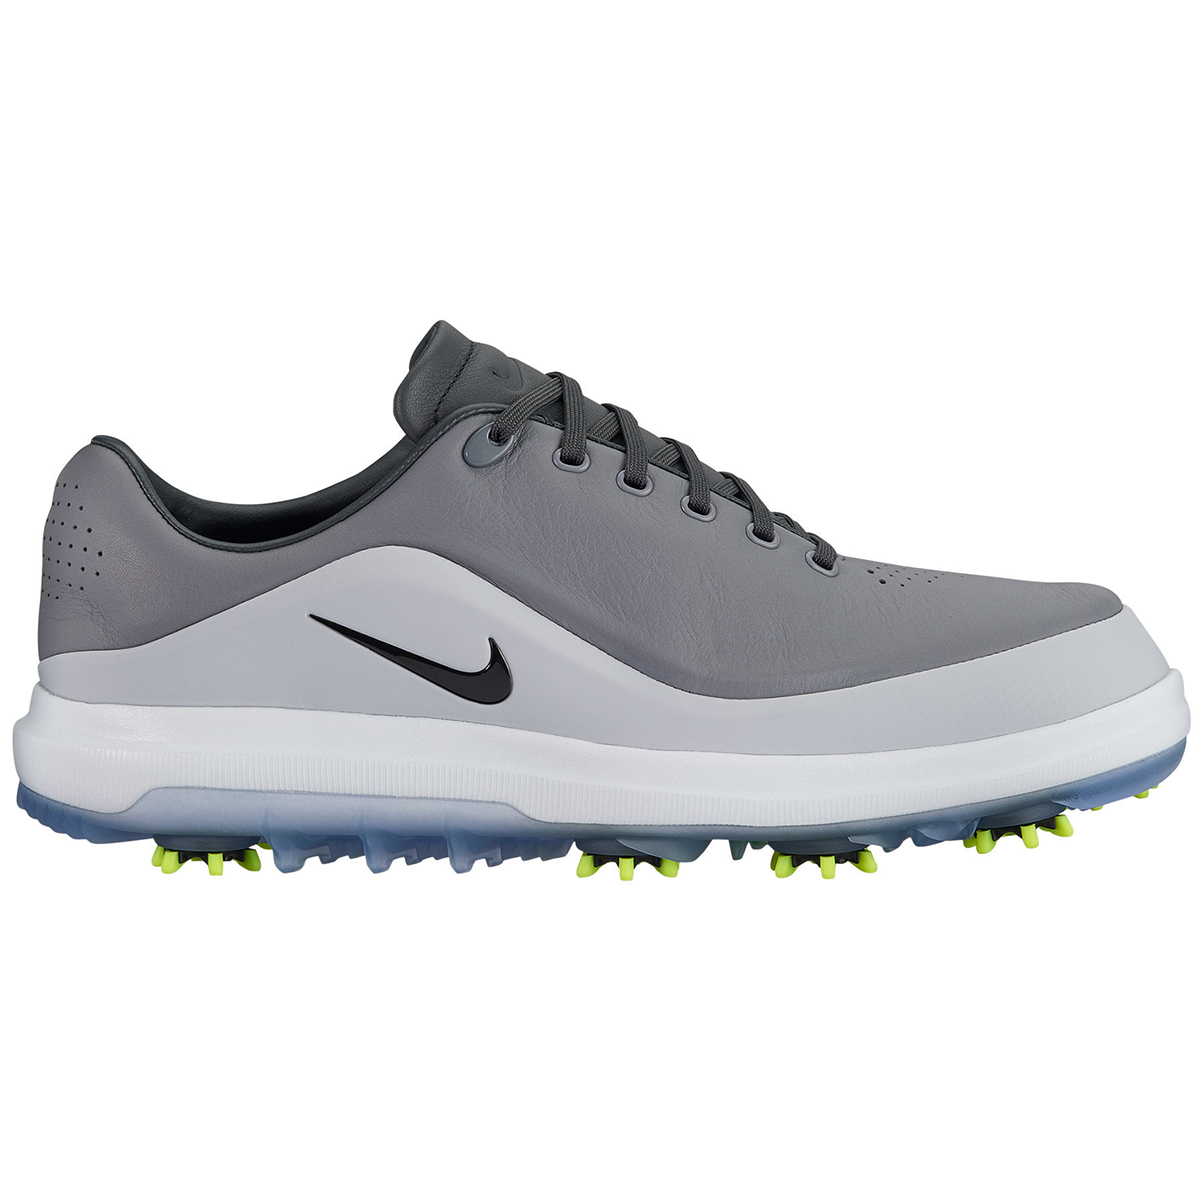 Nike Golf Air Zoom Precision Shoes Online Golf